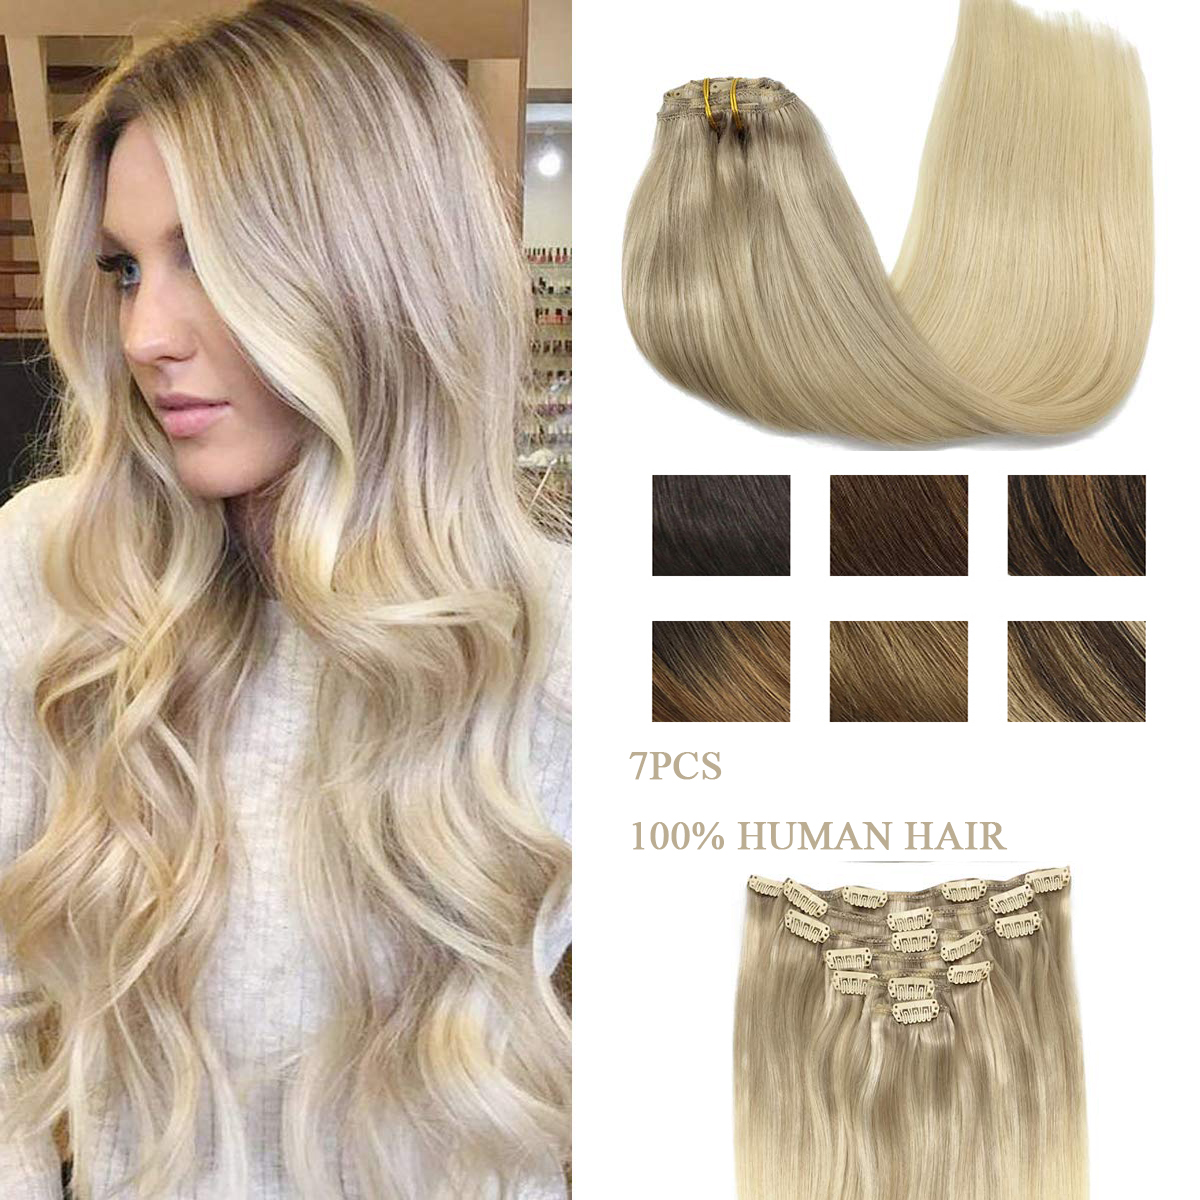 Full Head Clip In Hair Extensions Natural Black to Light Brown Honey Blonde Ombre 7pcs 120g 100% Human Remy Hair Clip Extensions